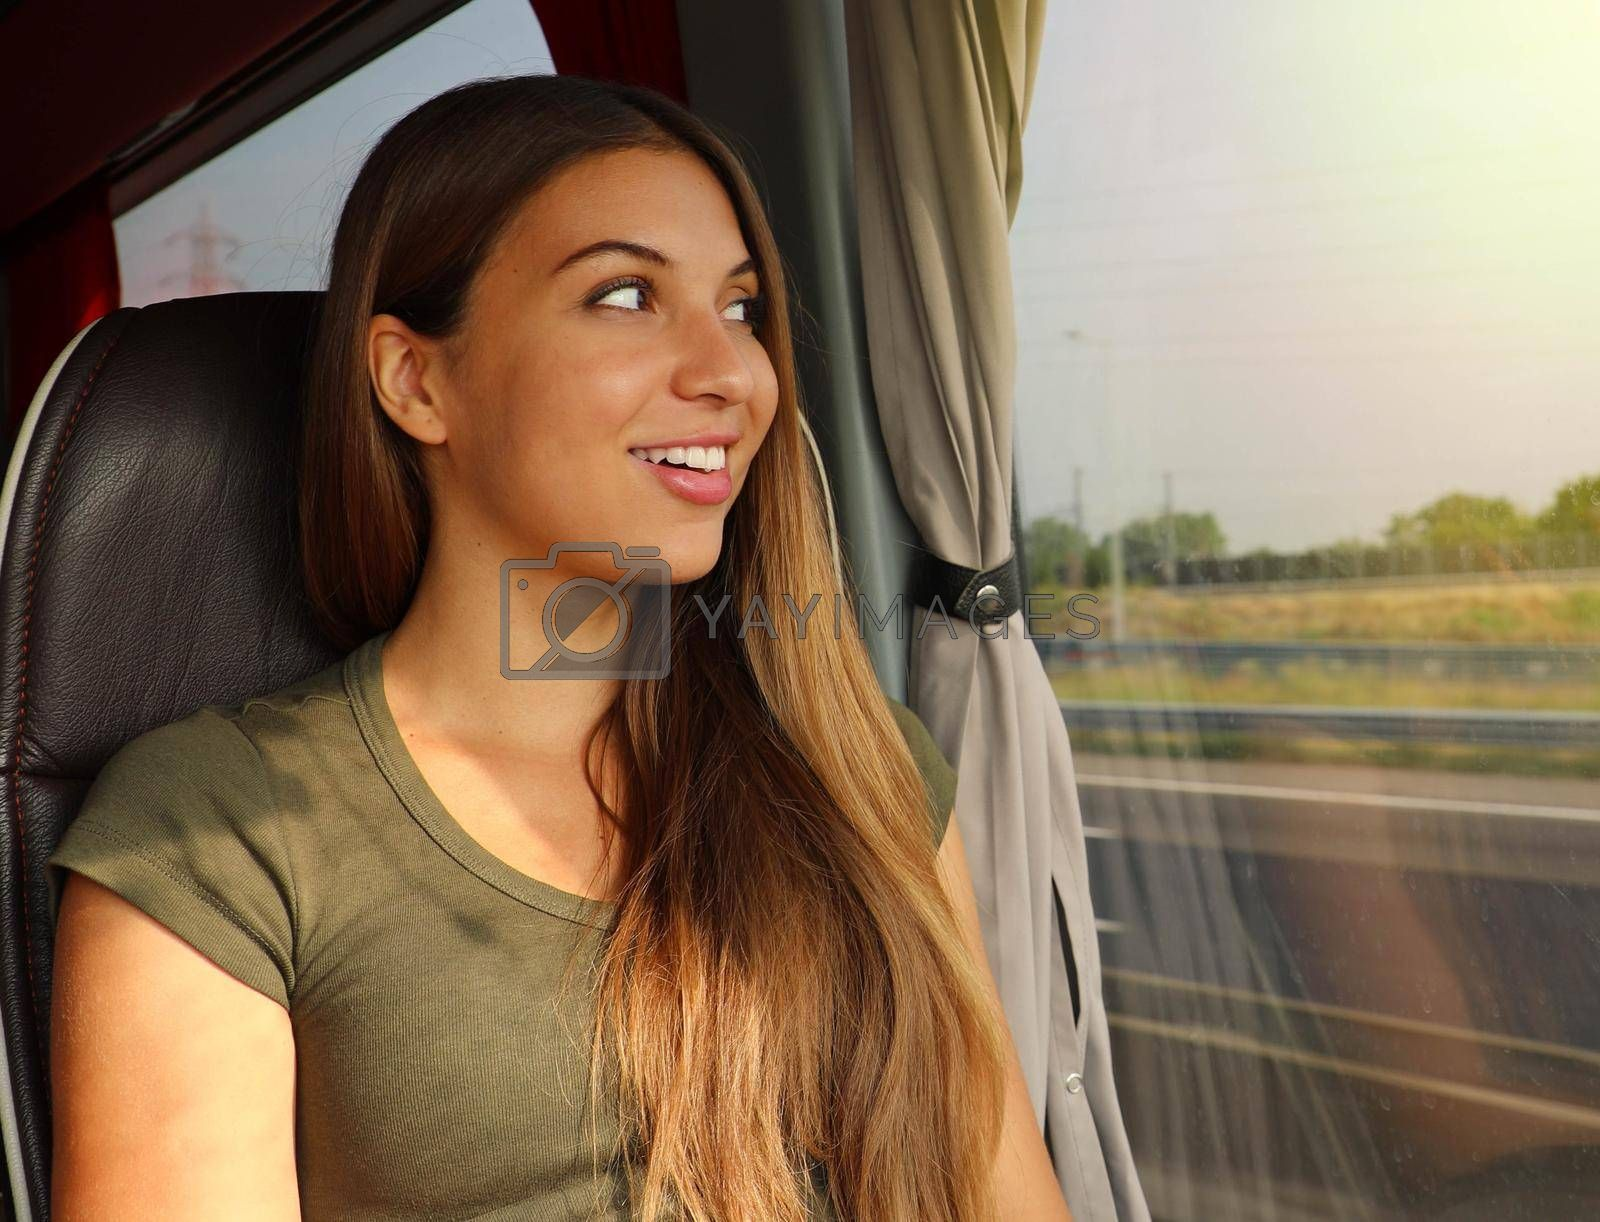 Easy travels. Traveller girl using comfortable bus to move. Young beautiful woman looking through the bus window. Happy bus passenger traveling sitting in a seat and looking through the window.